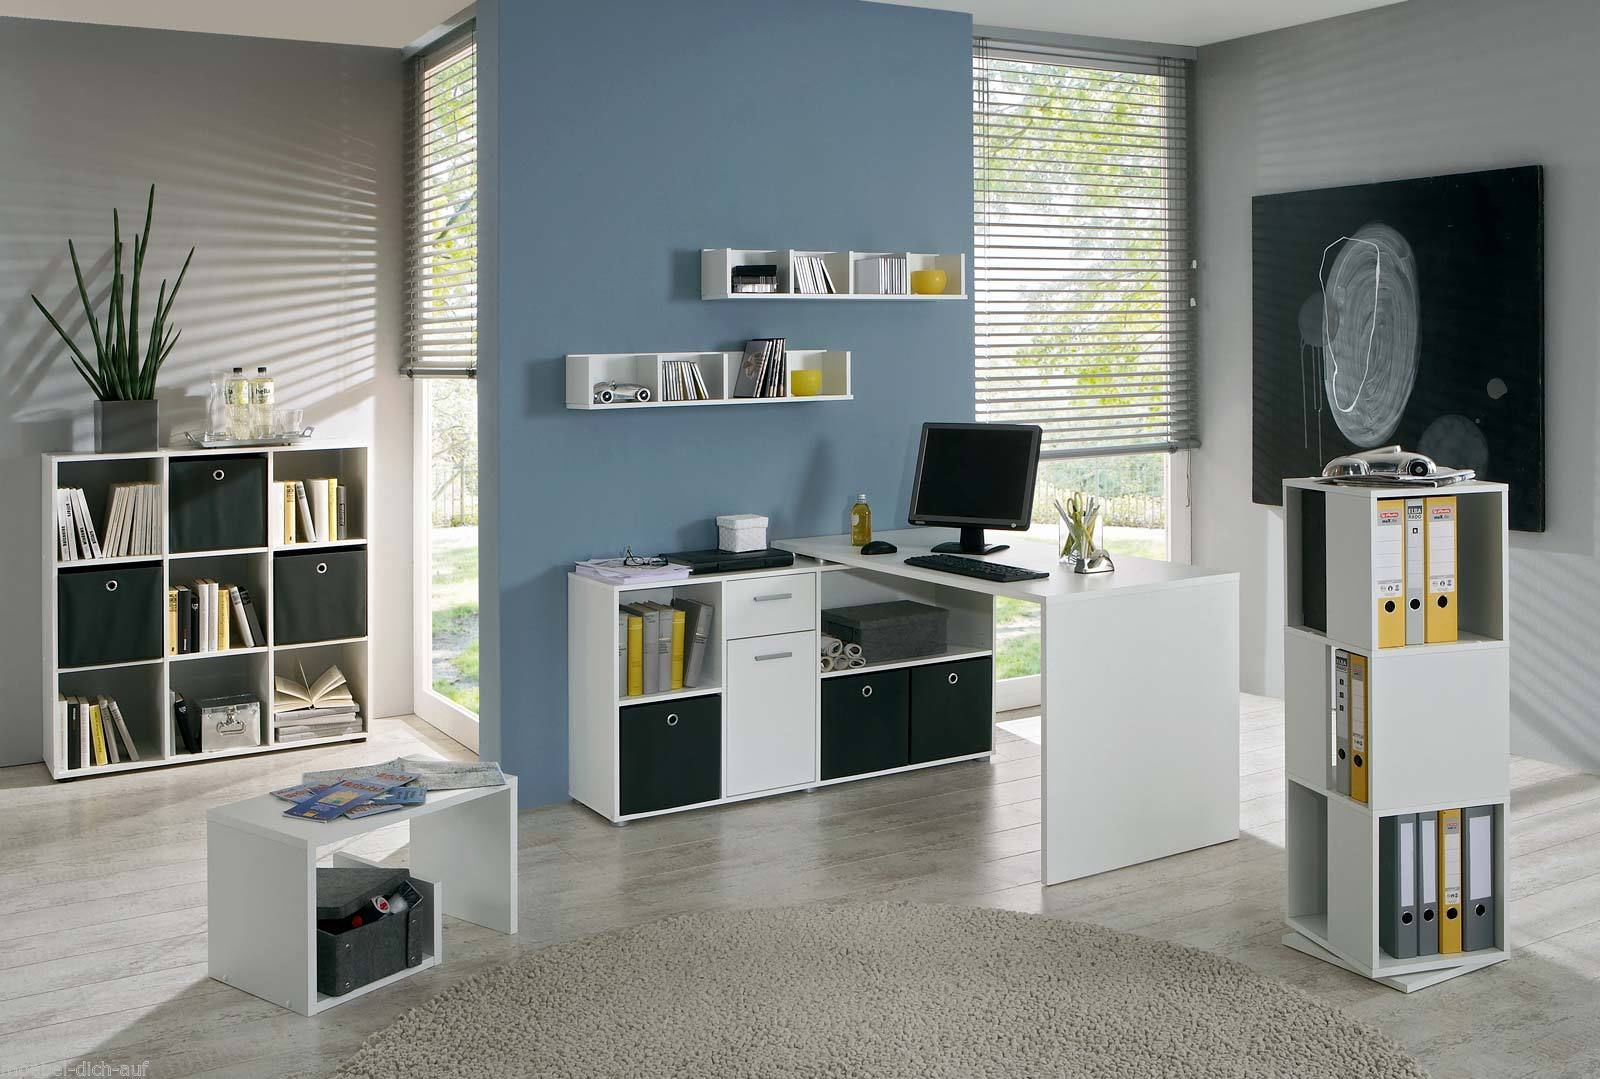 arbeitszimmer minioffice lexus 7 tlg in wei moebel dich. Black Bedroom Furniture Sets. Home Design Ideas